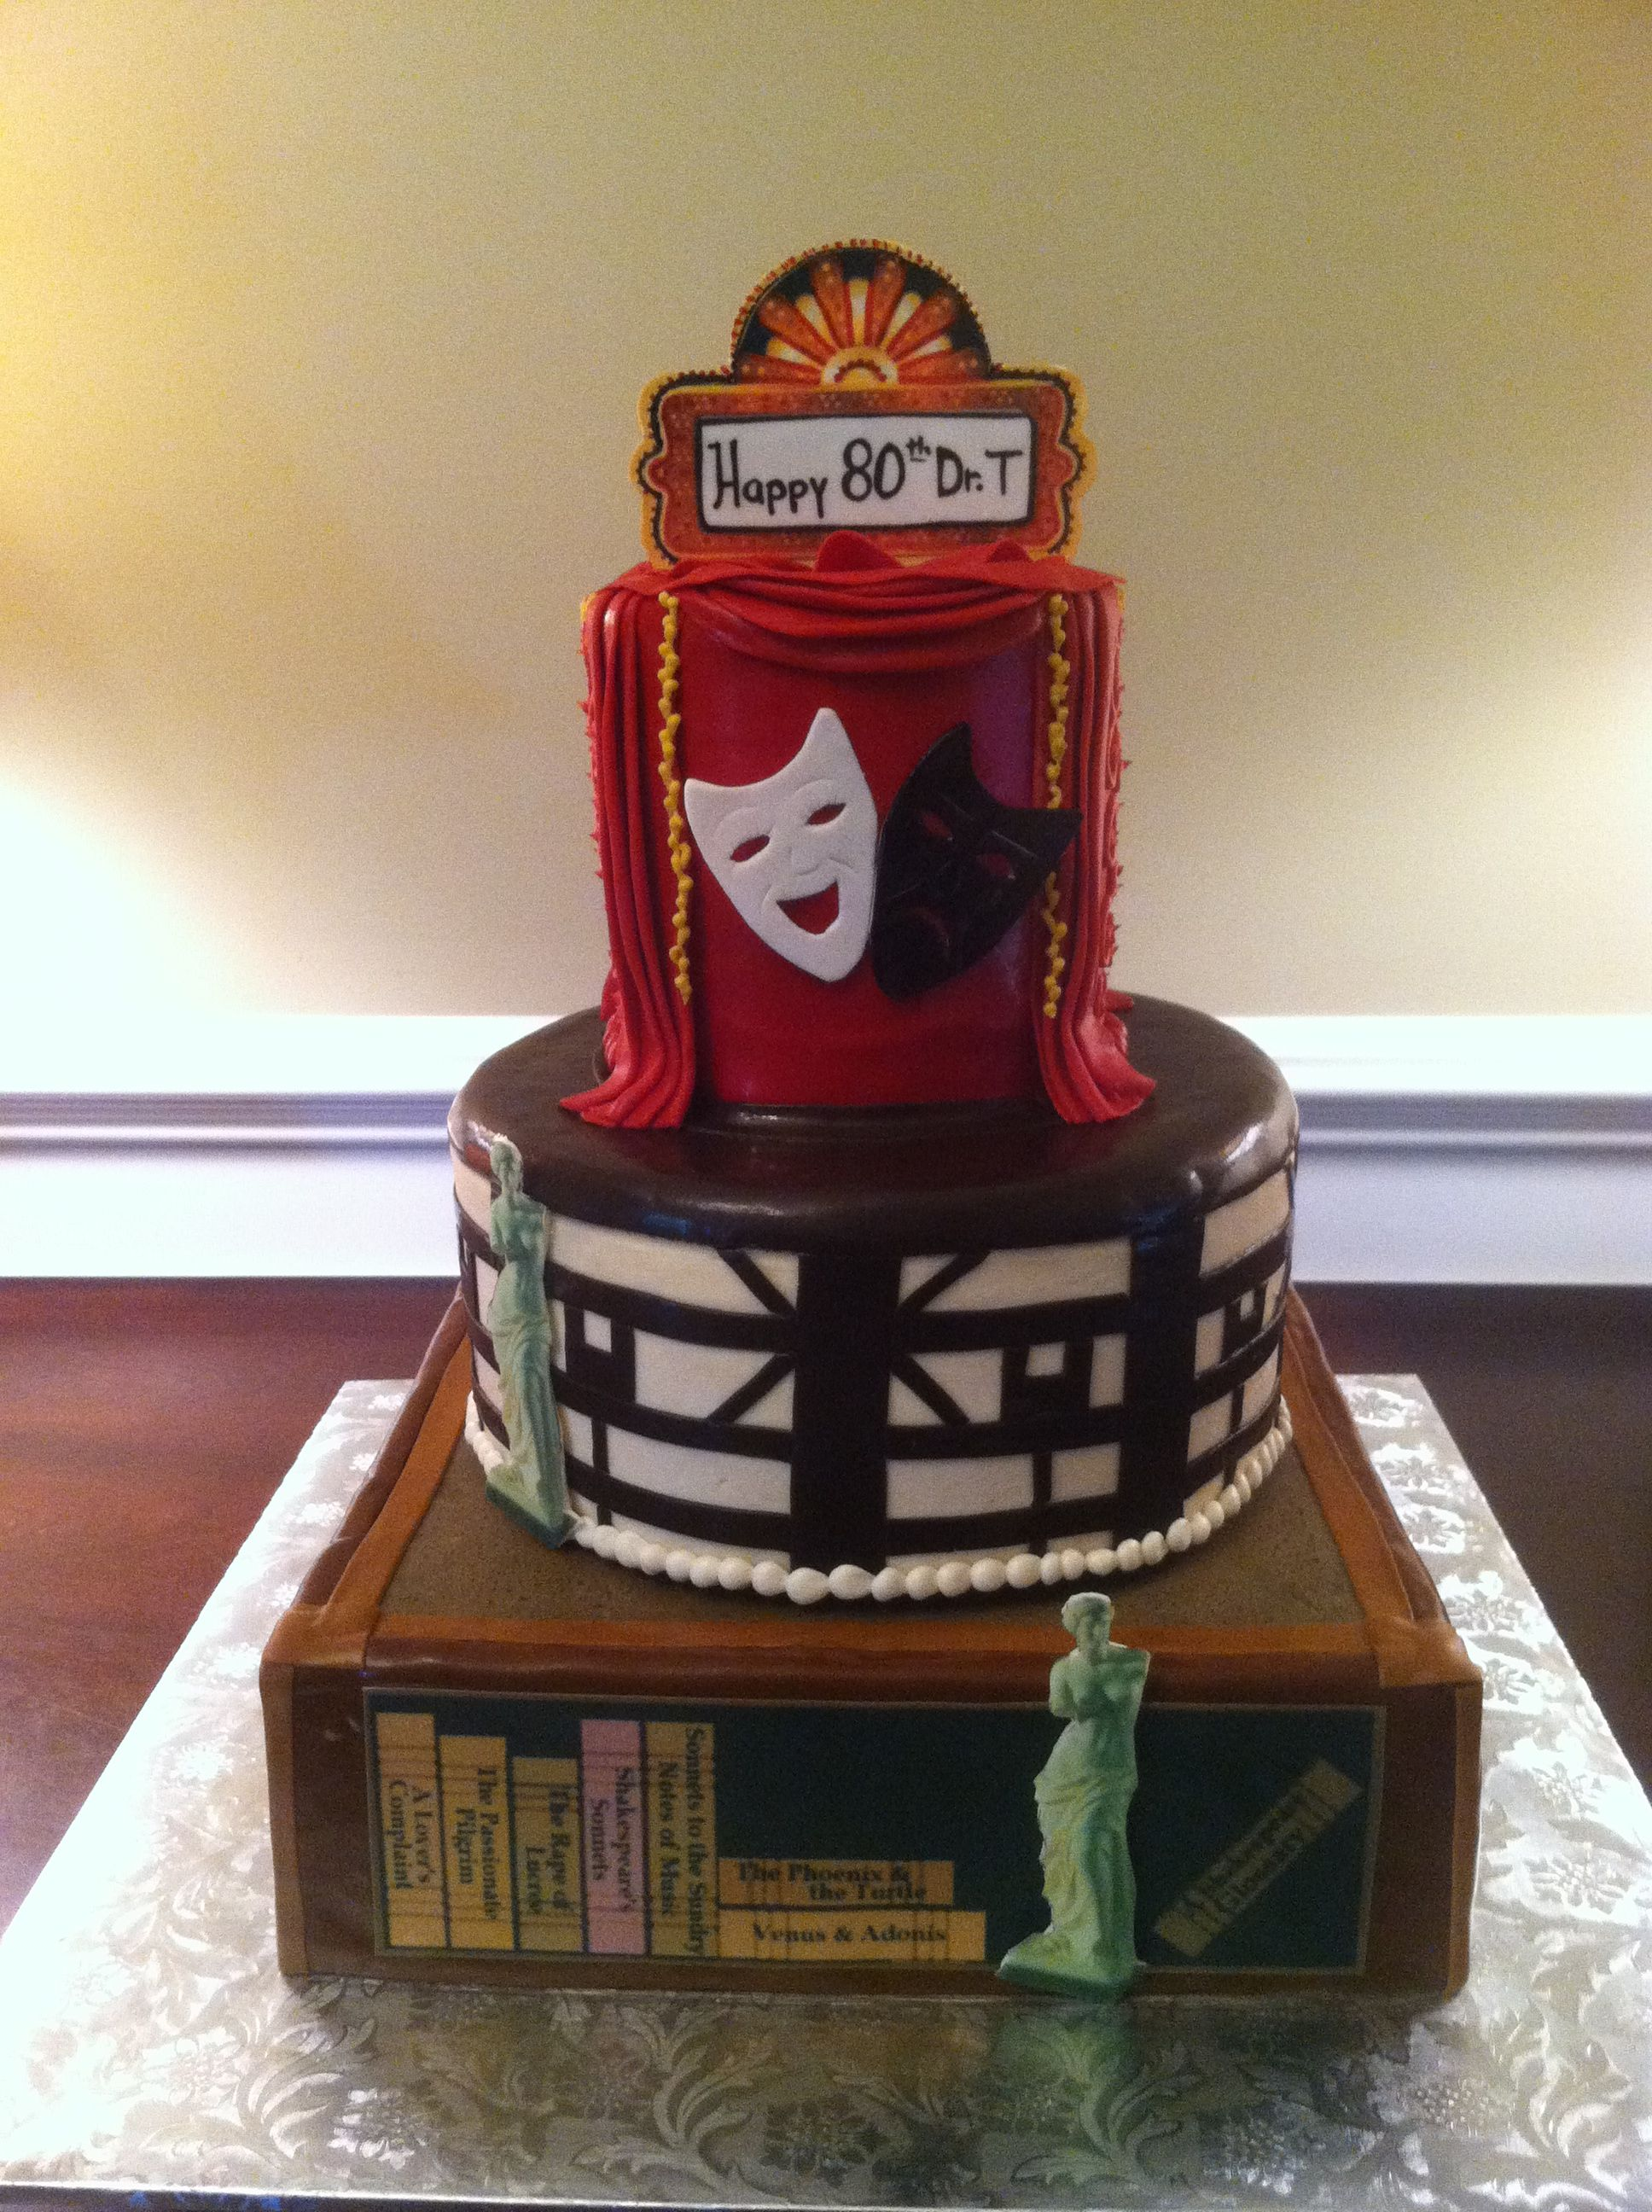 Theatre Cake My Cakes Cake Cake Decorating Cakes More